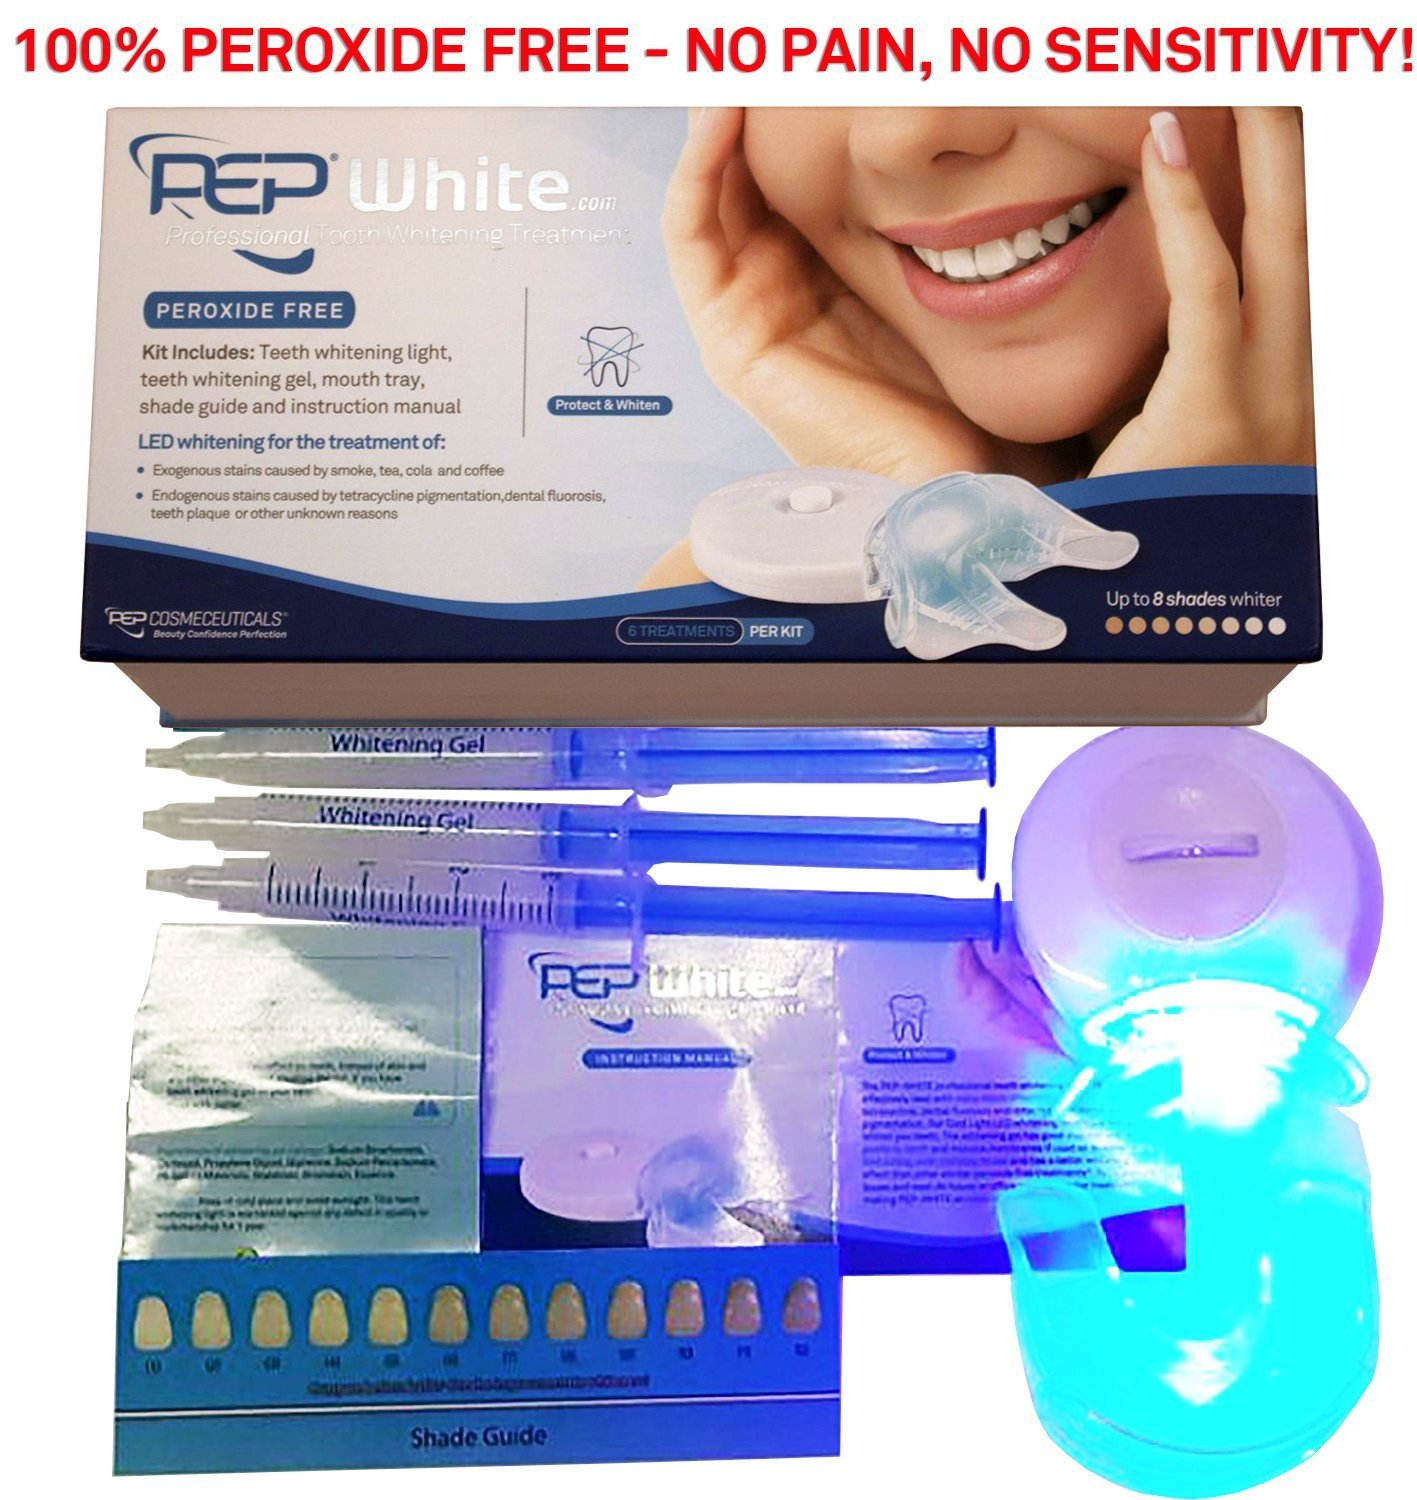 PEP-WHITE - ZERO PEROXIDE Teeth Whitening Kit